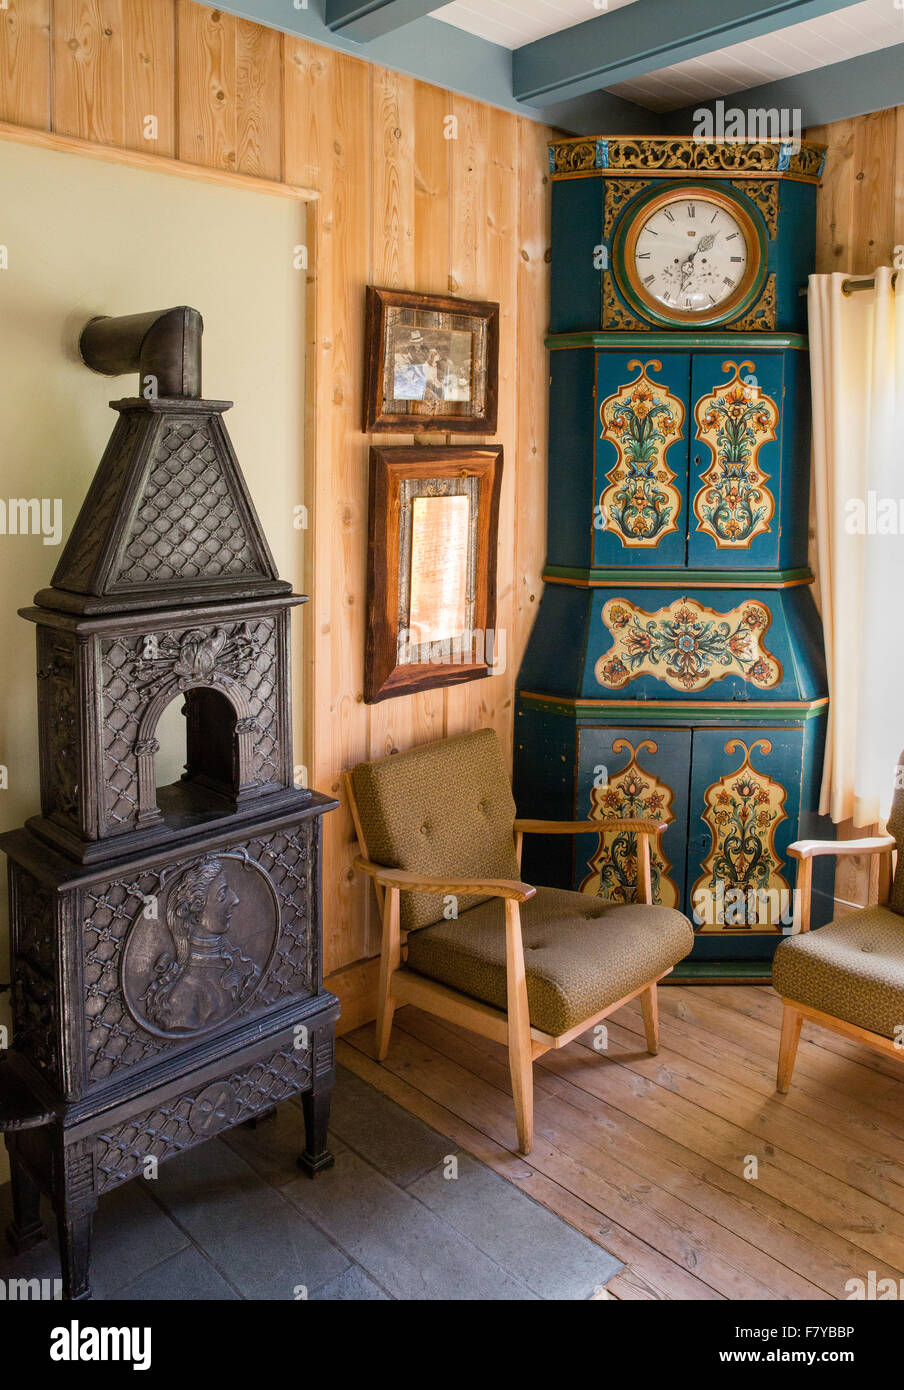 Elegant scandinavian interior decorated with antique furniture at the  Kongsvold Hotel in Oppland central Norway - - Scandinavian Interior Stock Photos & Scandinavian Interior Stock